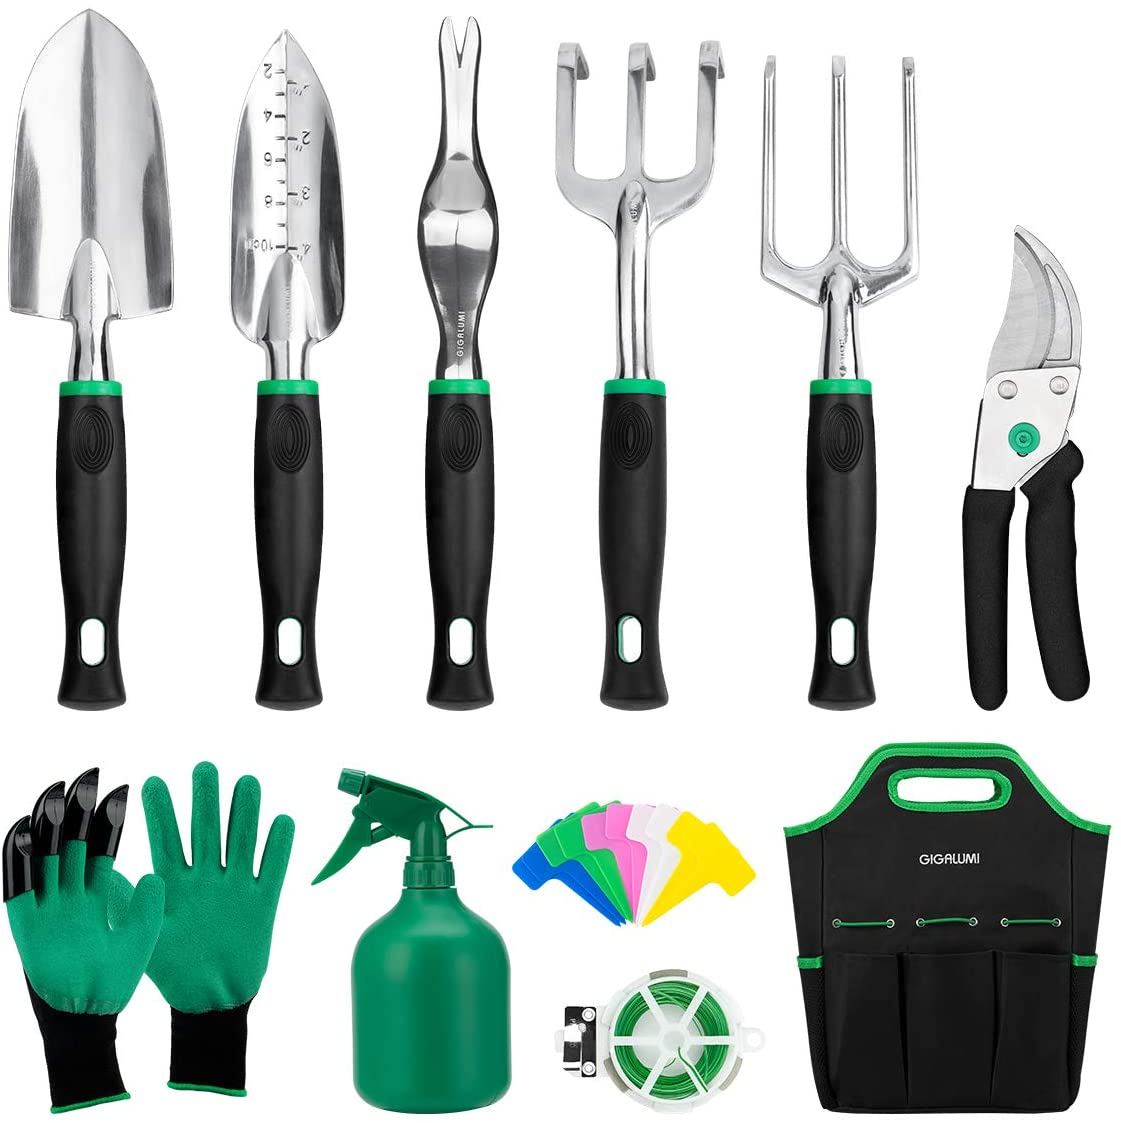 Garden Tools Buying Guide For 2021 - Home Special